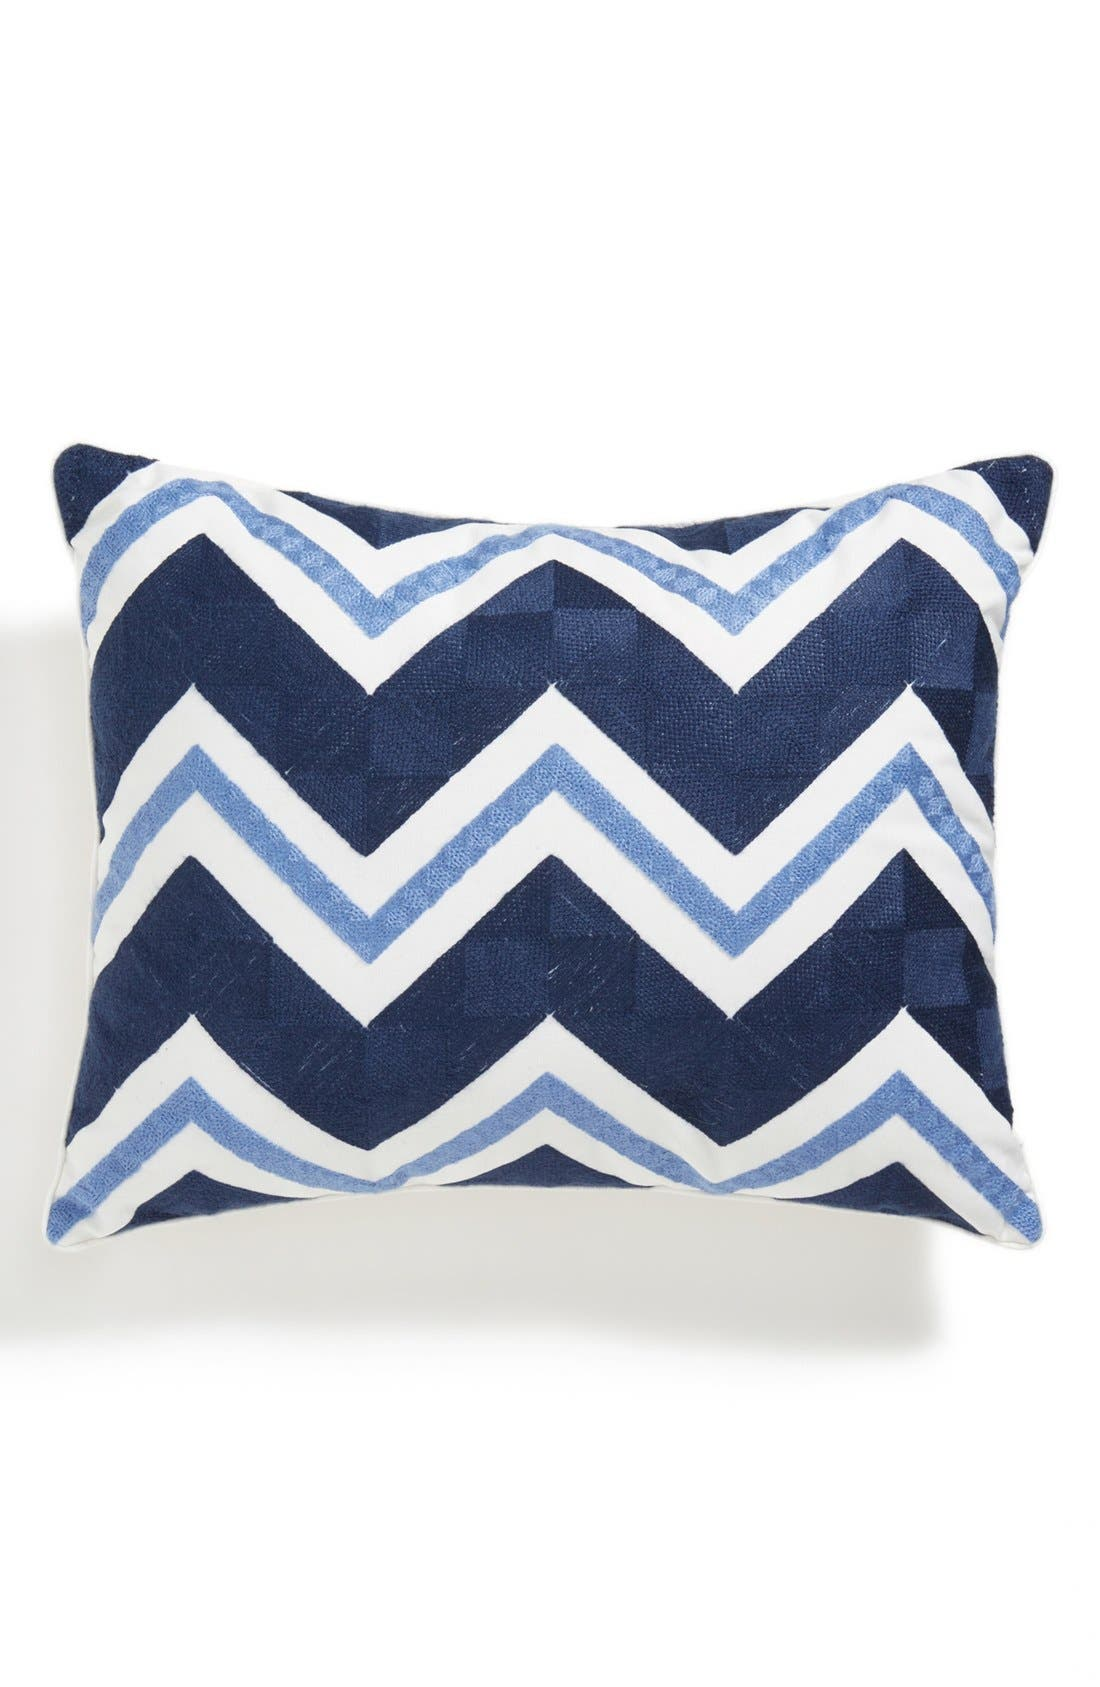 Main Image - Nostalgia Home Embroidered Accent Pillow